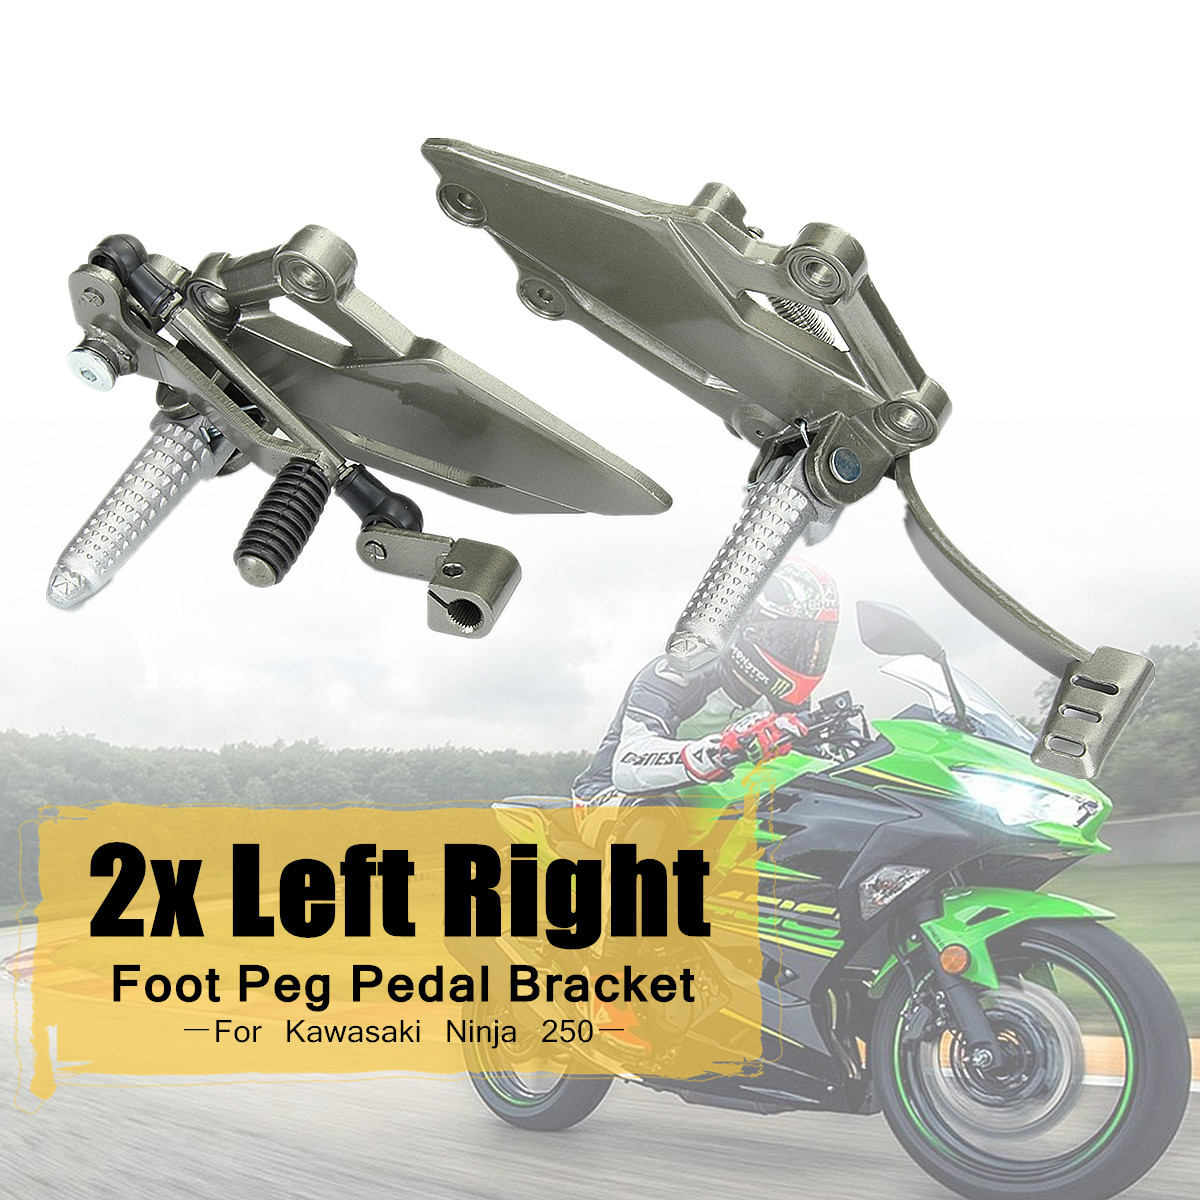 2x Left Right Rear Foot Peg Brake Pedal Footrest Bracket For Kawasaki Ninja 250 Aluminum Alloy Surface Polishing Galvanized